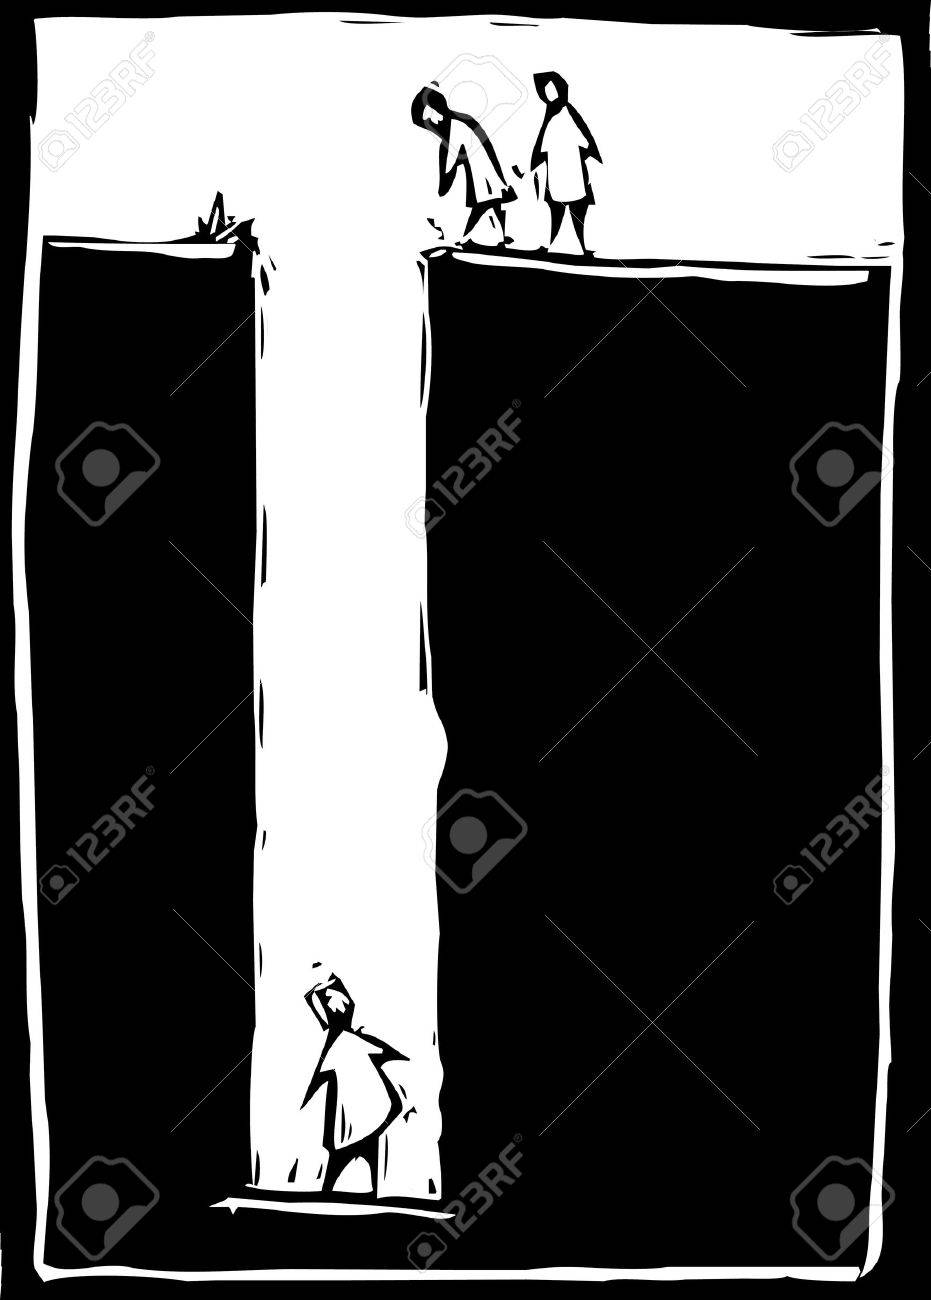 simple woodcut image of a person trapped at the bottom of a hole. Stock Vector - 8176476